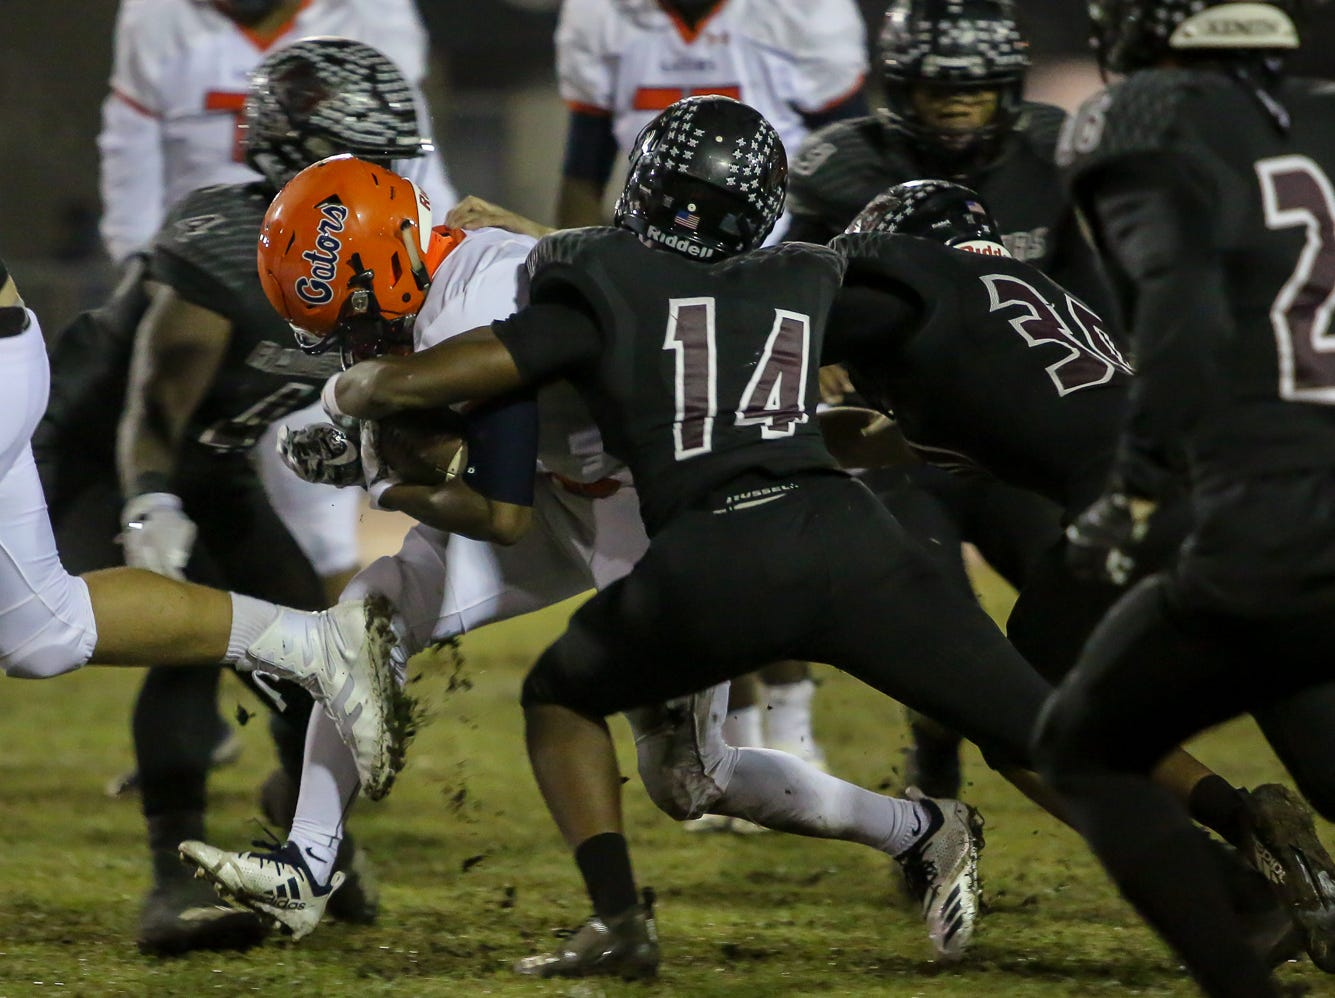 The Navarre Raiders take on the Escambia Gators in the Region 1-6A Semifinal game at Navarre High School on Friday, November 16, 2018.